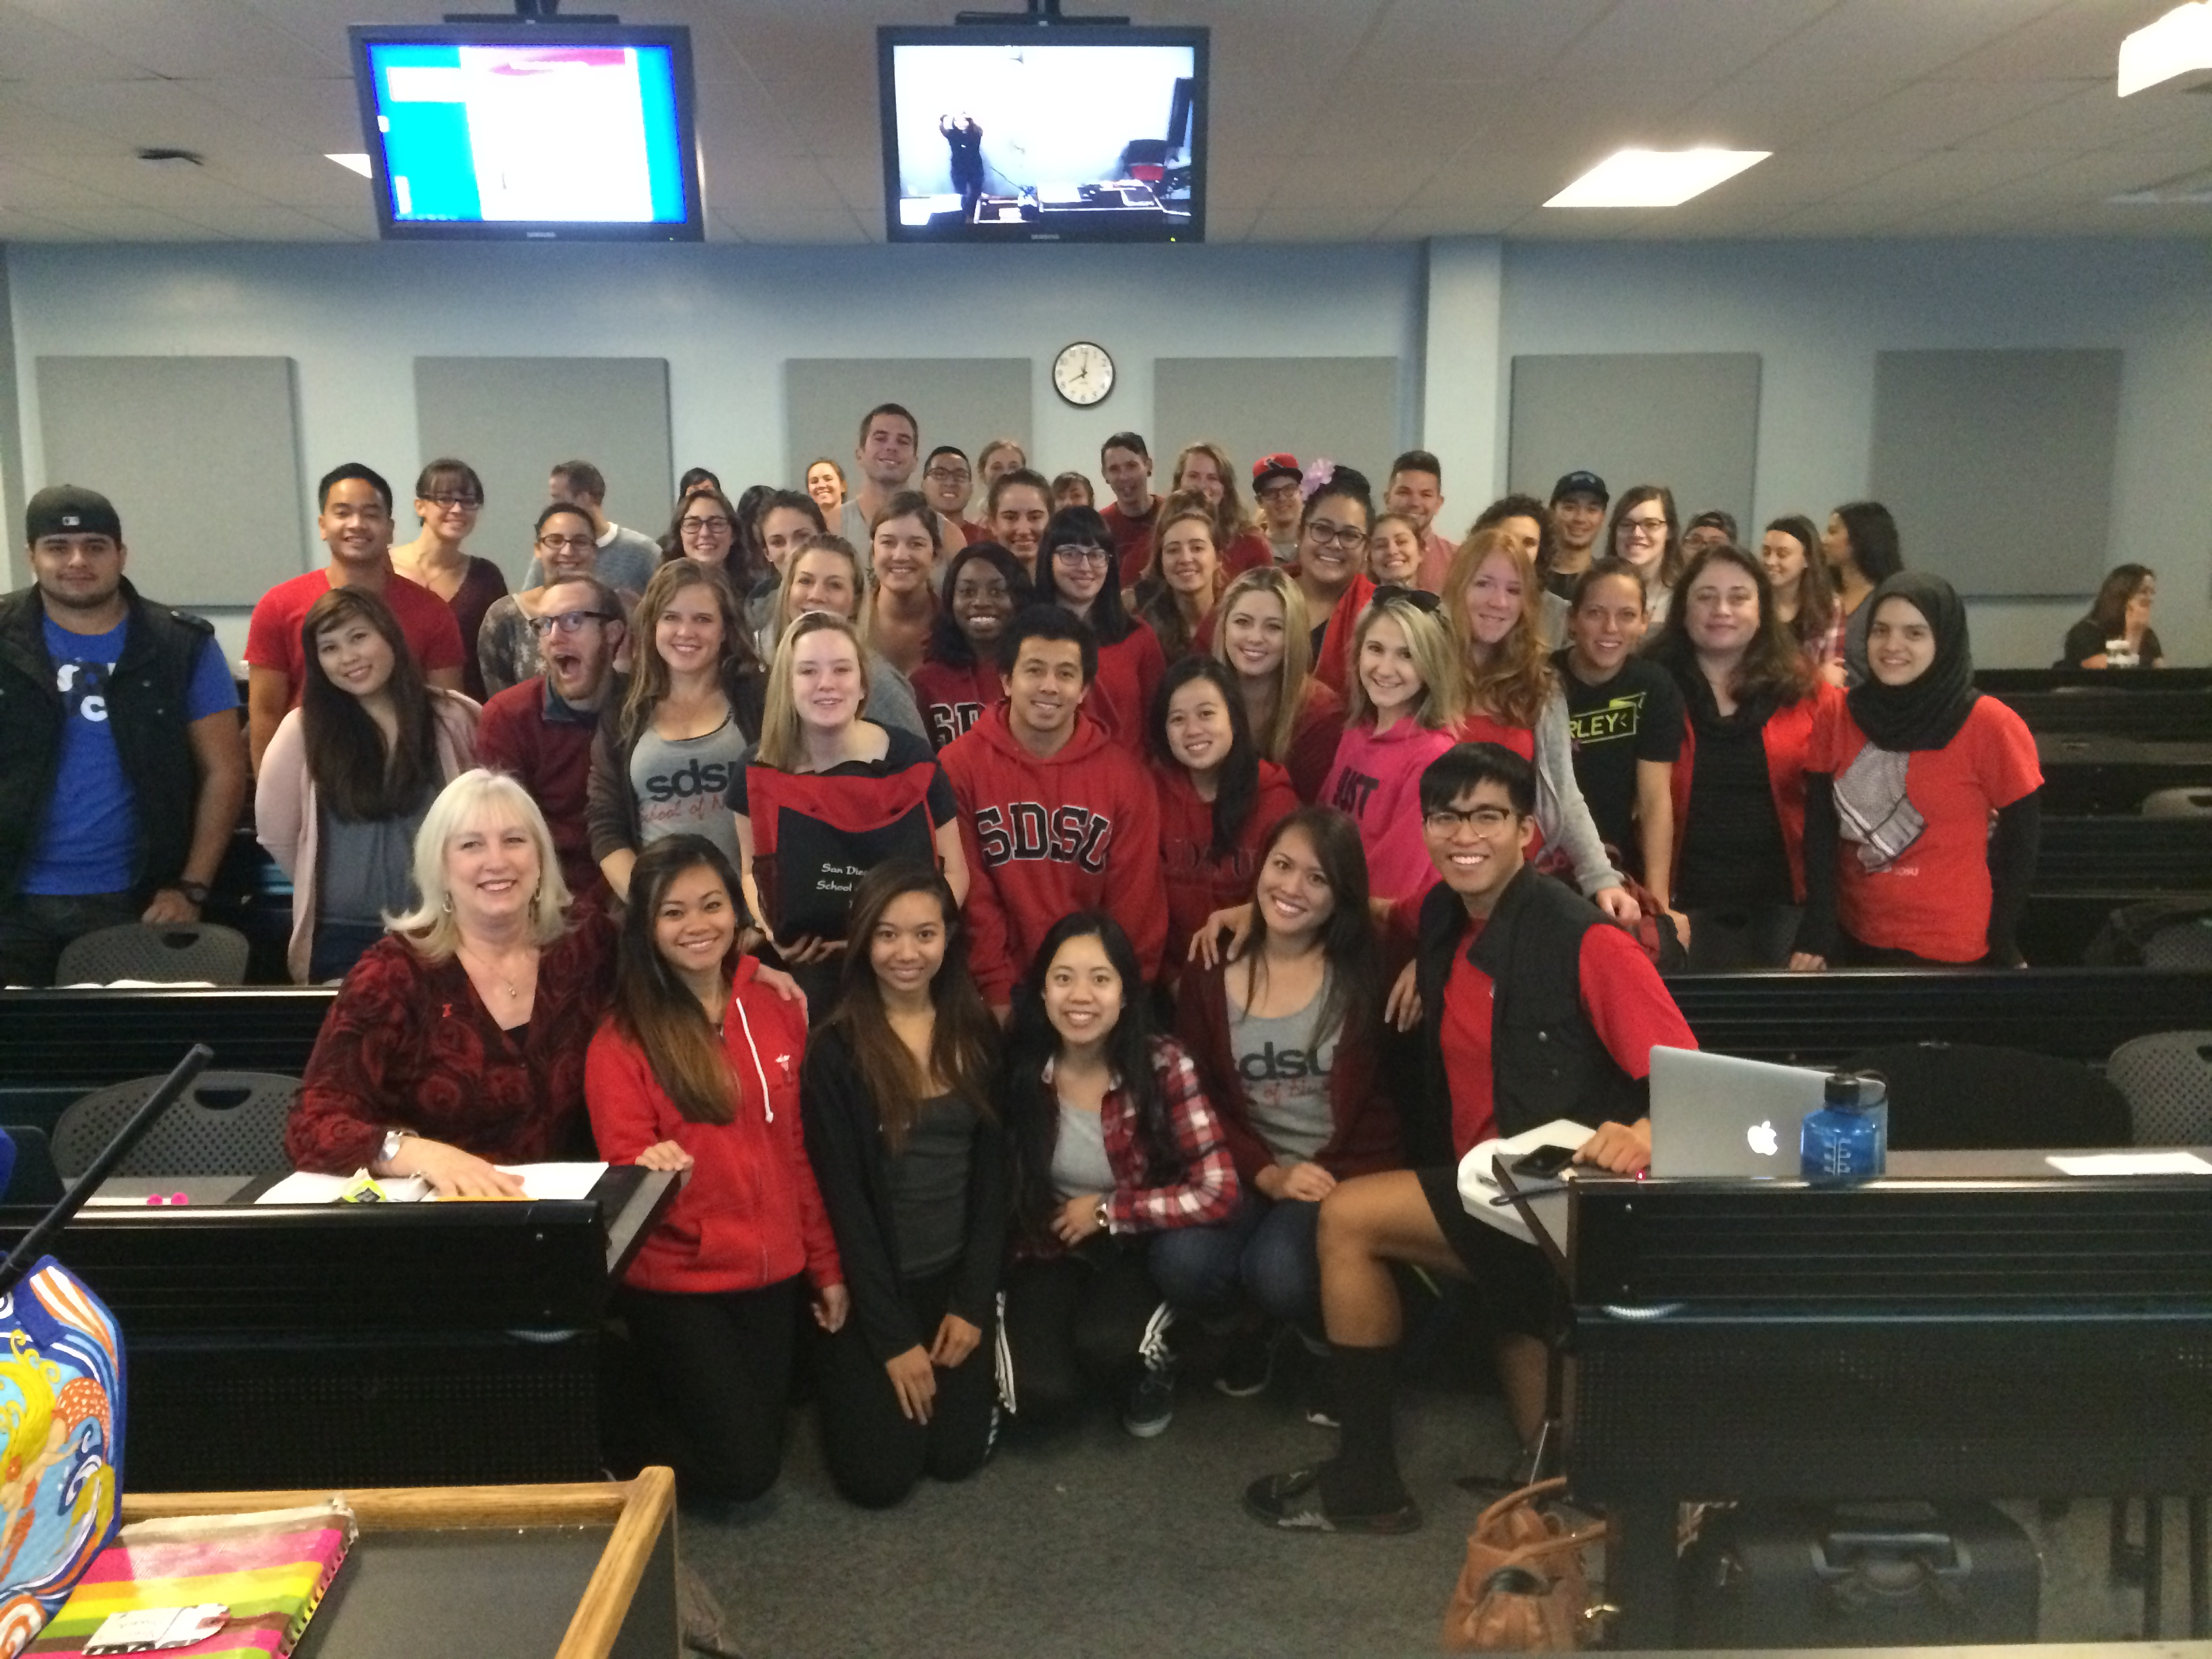 The SDSU School of Nursing is proud to show support for the American Heart Association Go Red for Women campaign!